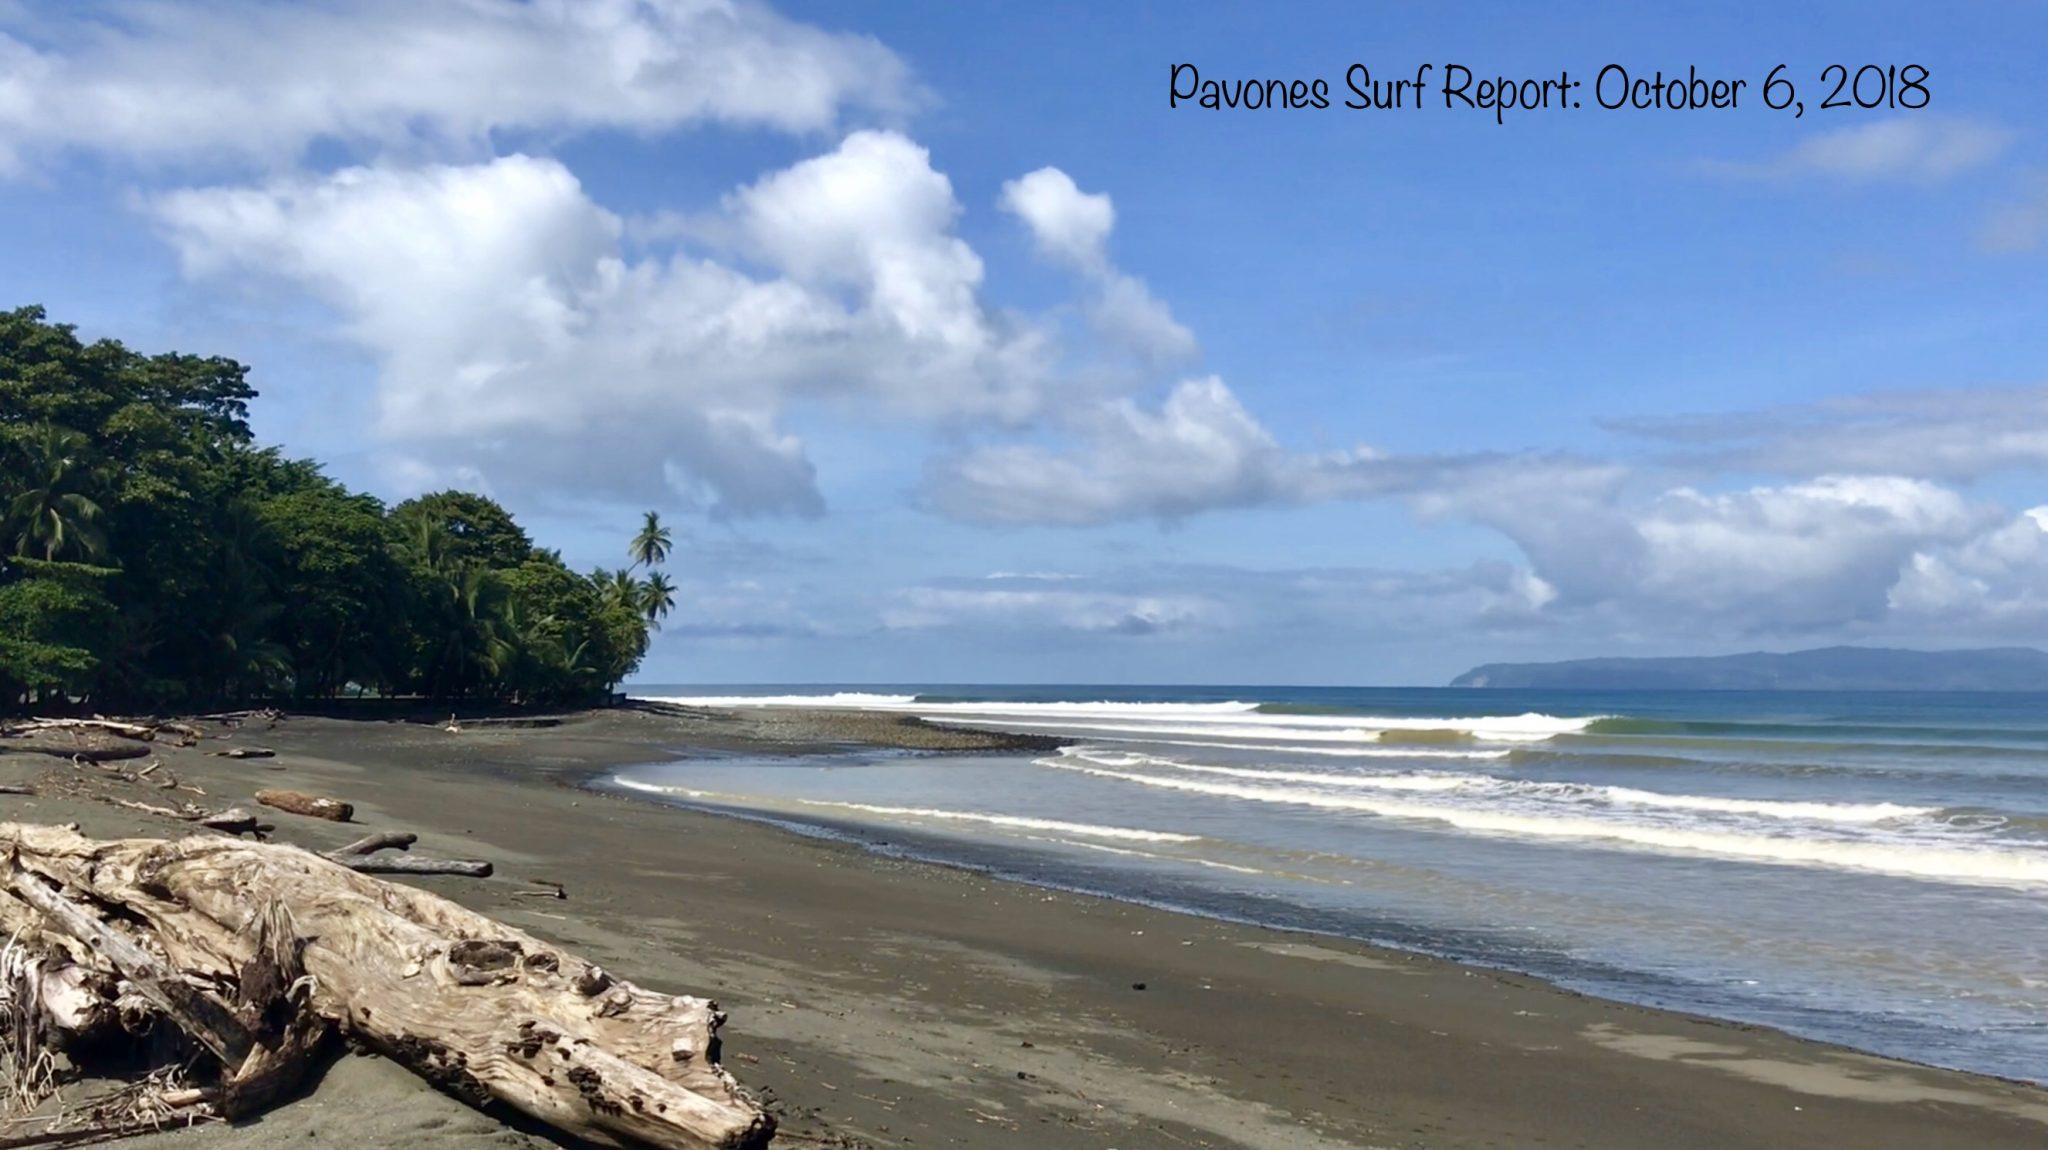 Pavones Surf Report Photo